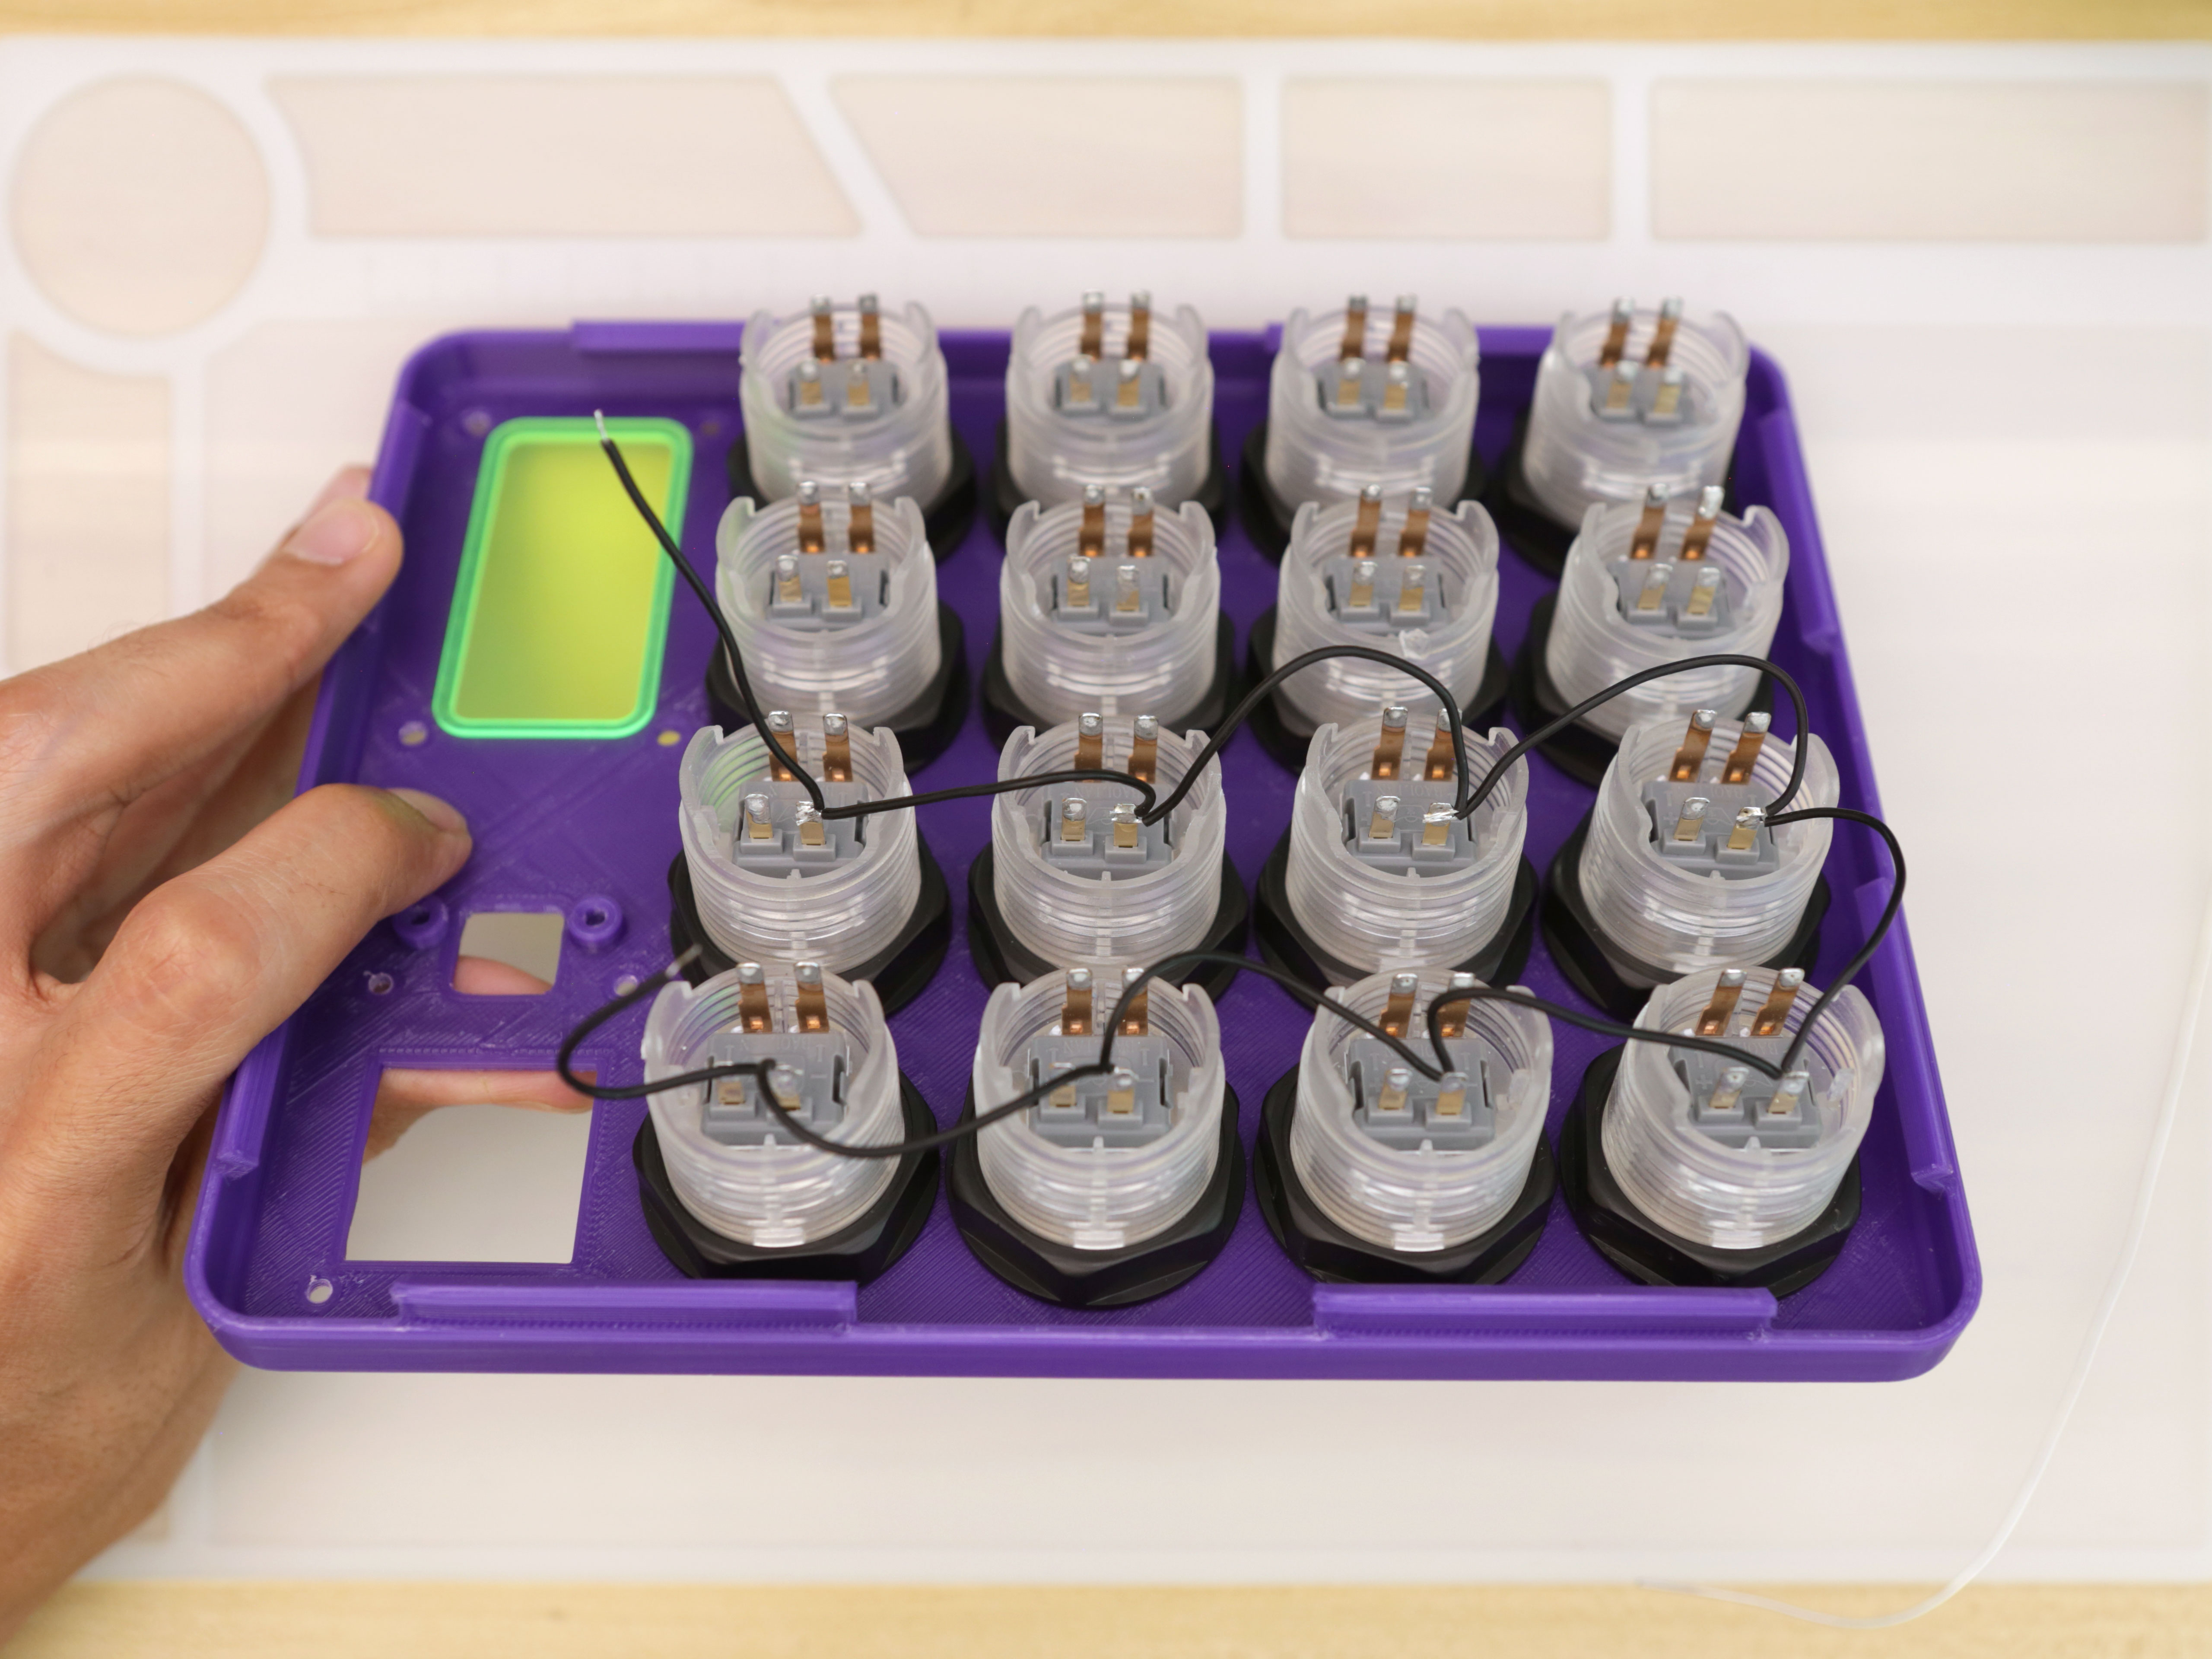 3d_printing_buttons-row-5-8-grounds.jpg